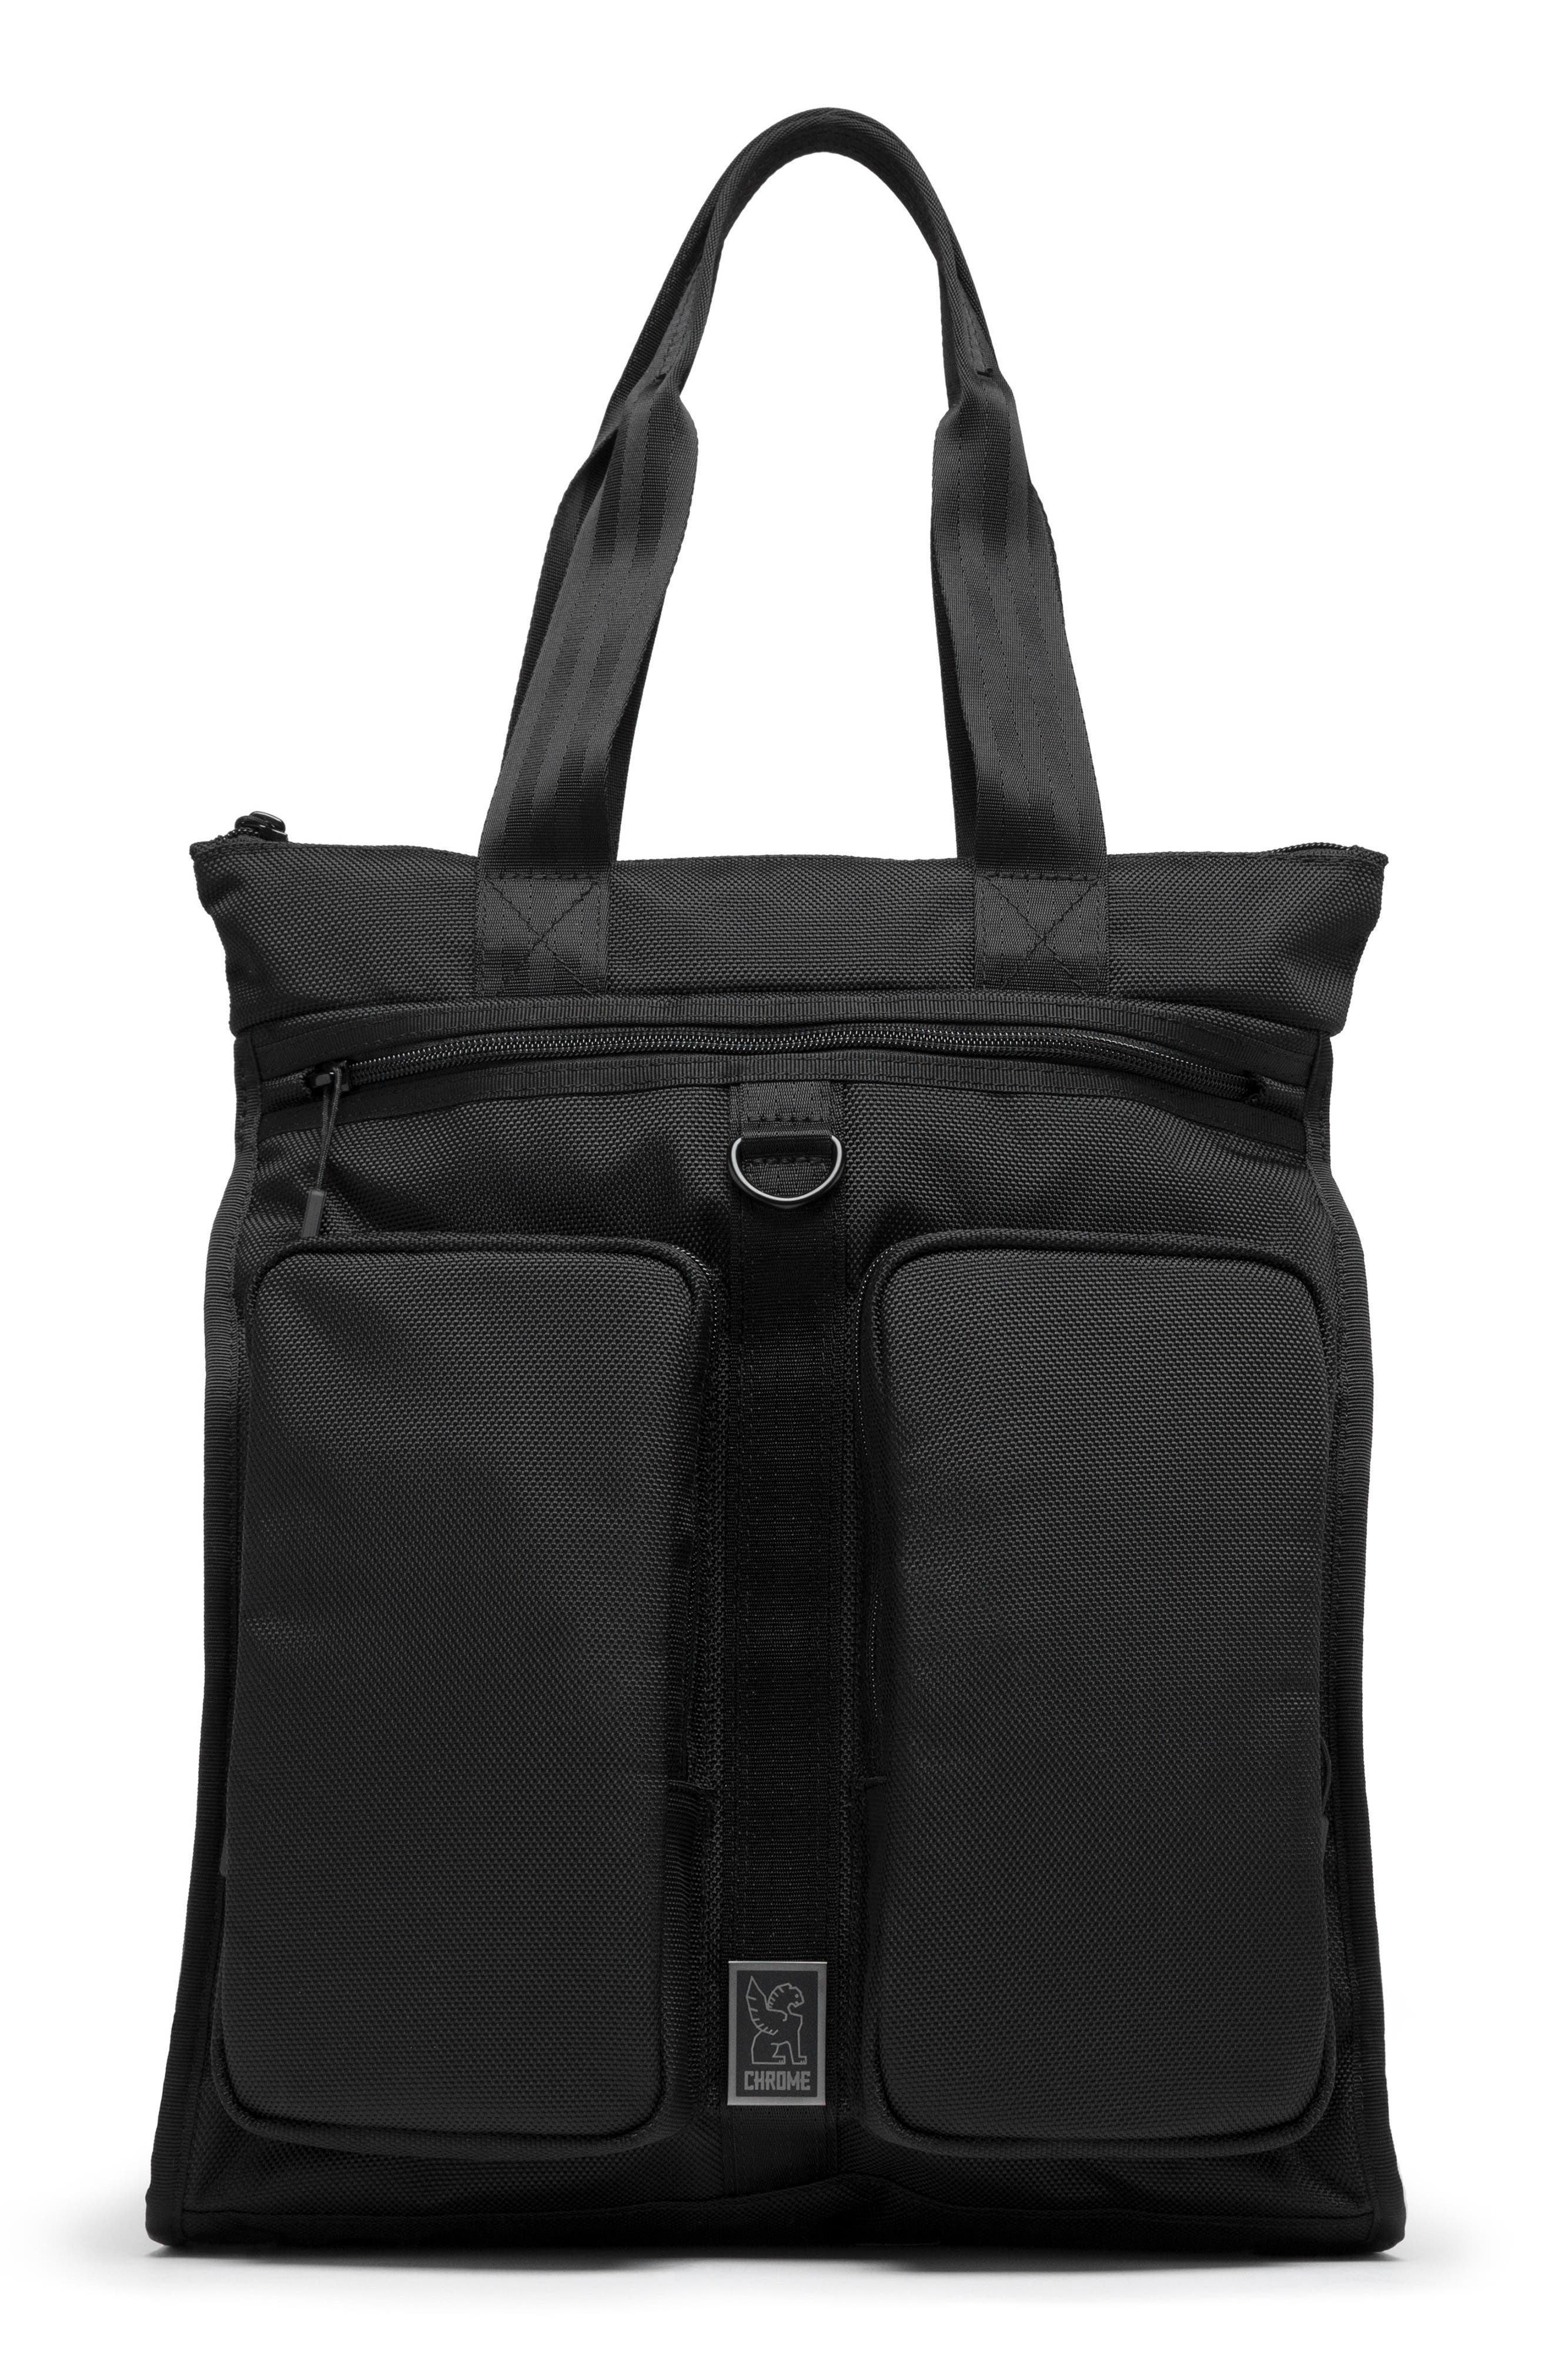 MXD Pace Tote Bag,                             Main thumbnail 1, color,                             All Black